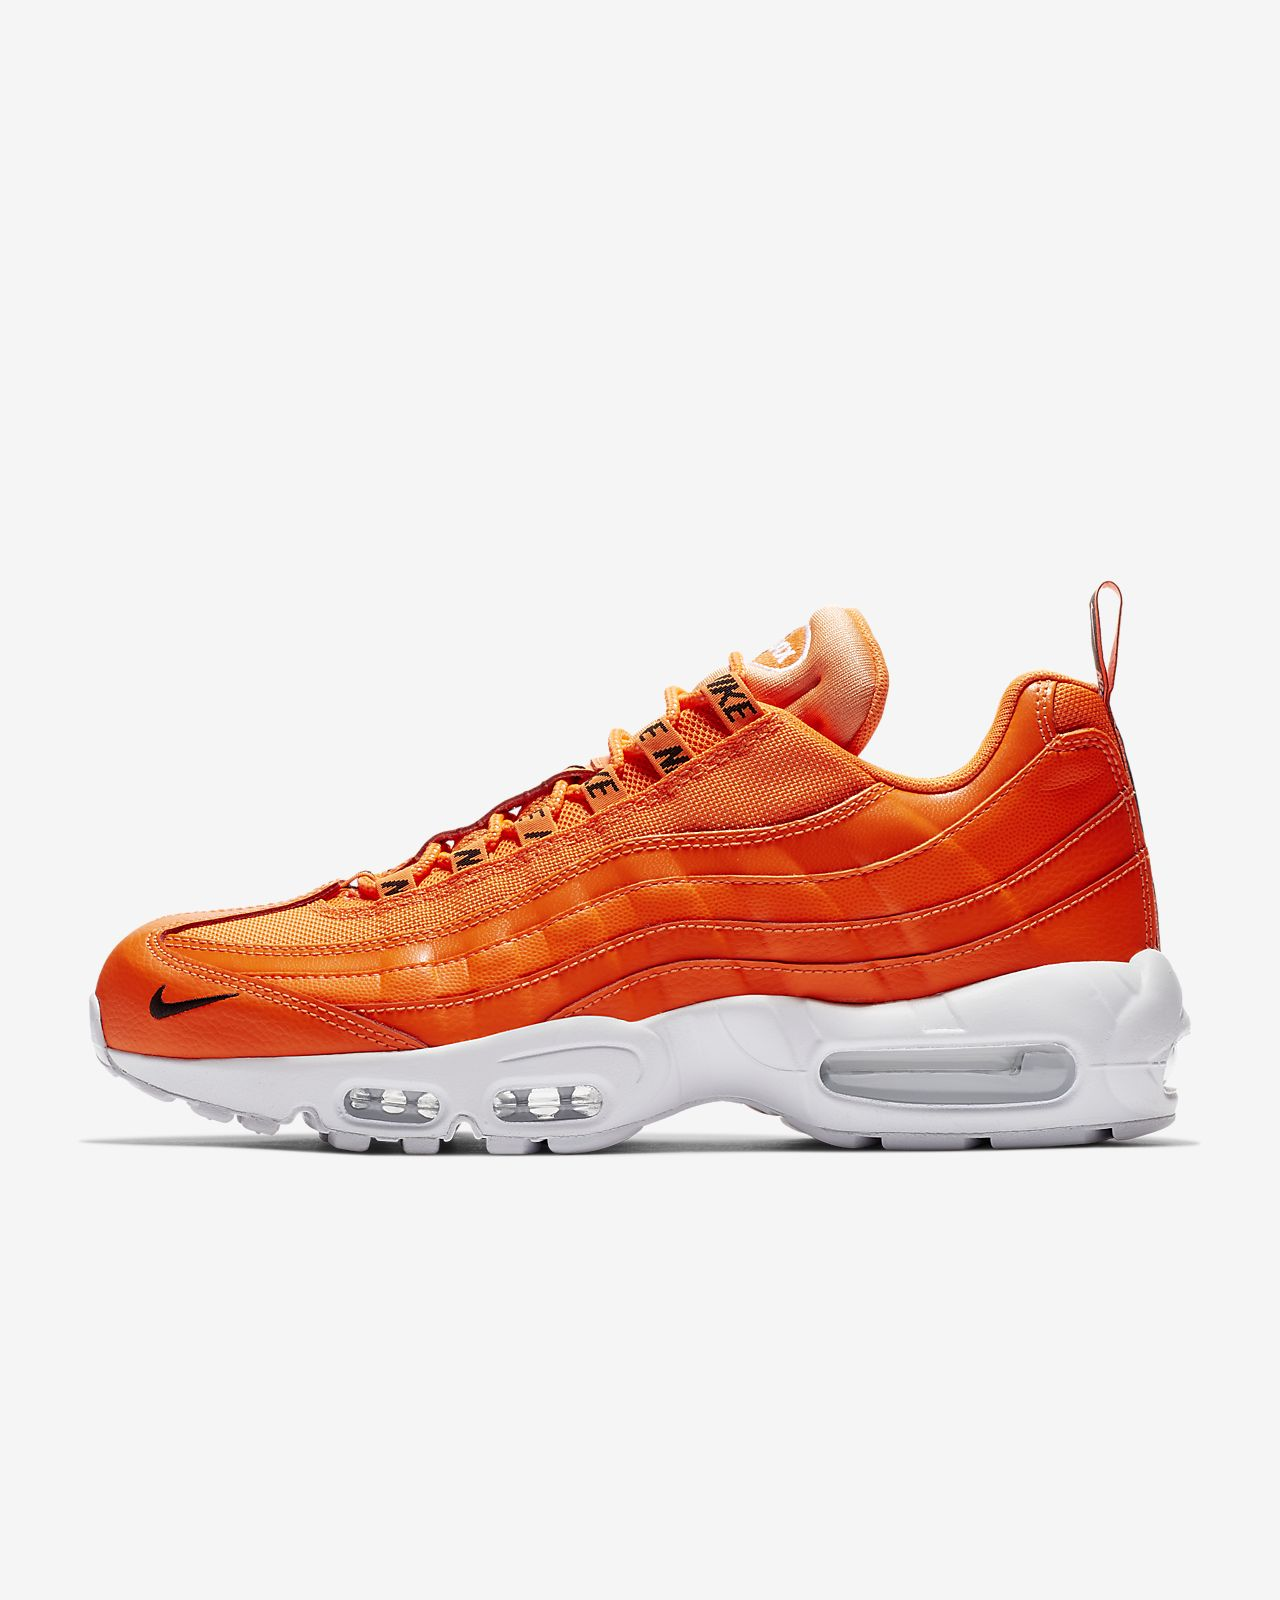 new style 80ceb 52ba6 ... Chaussure Nike Air Max 95 Premium pour Homme